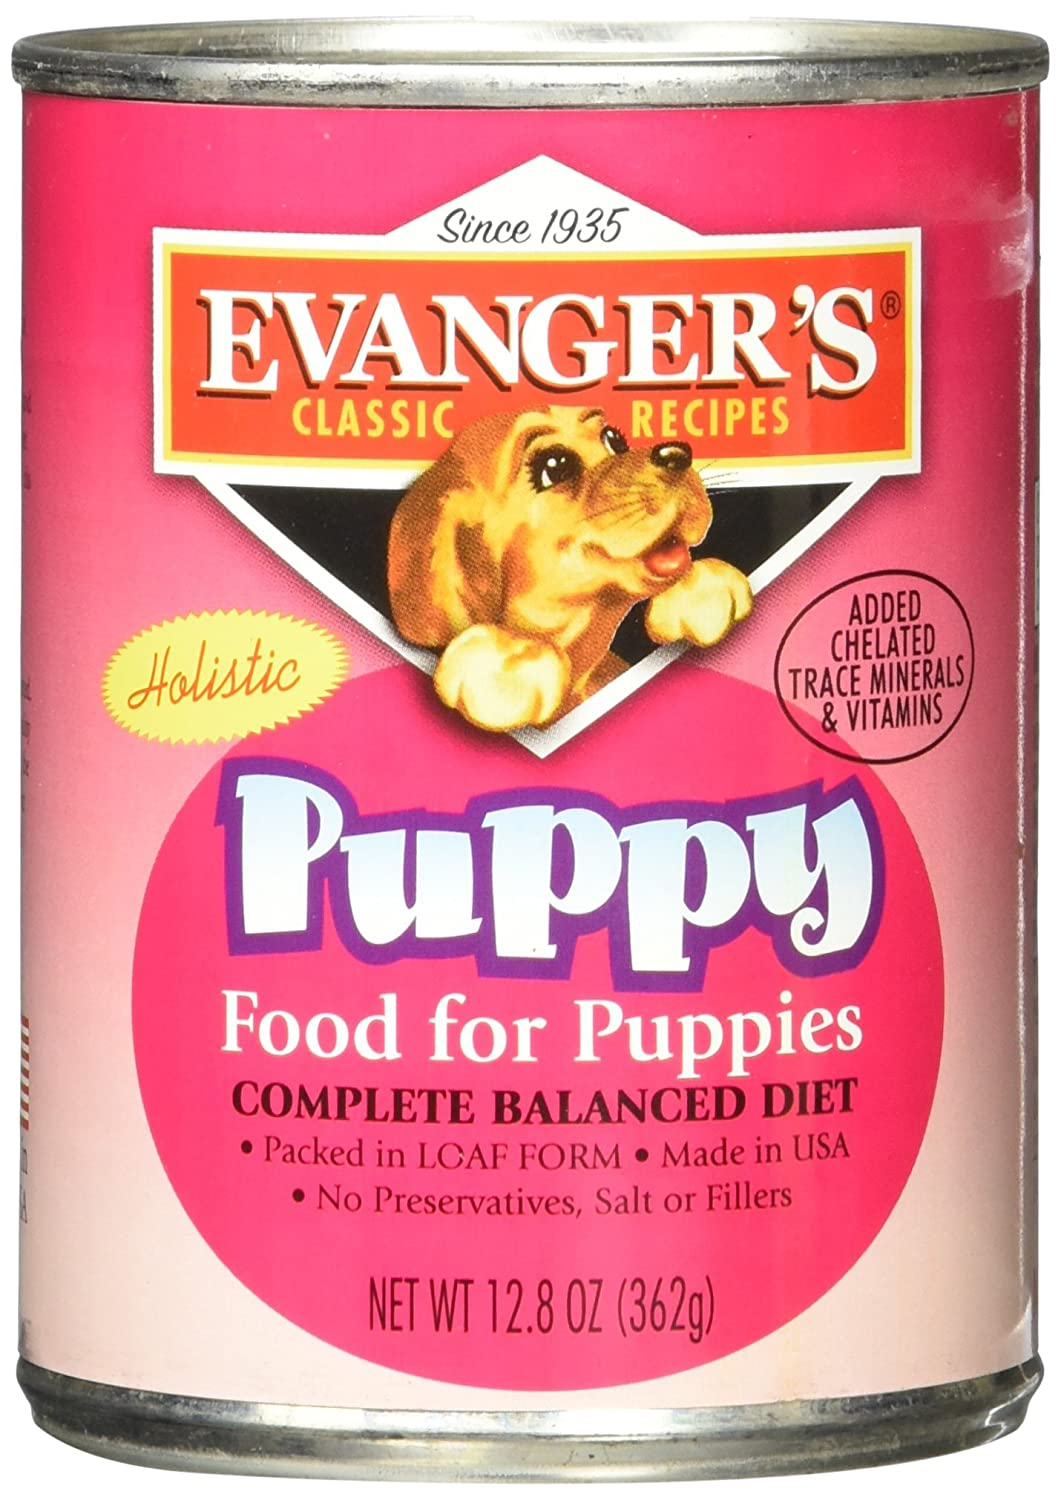 Evangers Complete Classic Dinners Puppy 12x13 oz